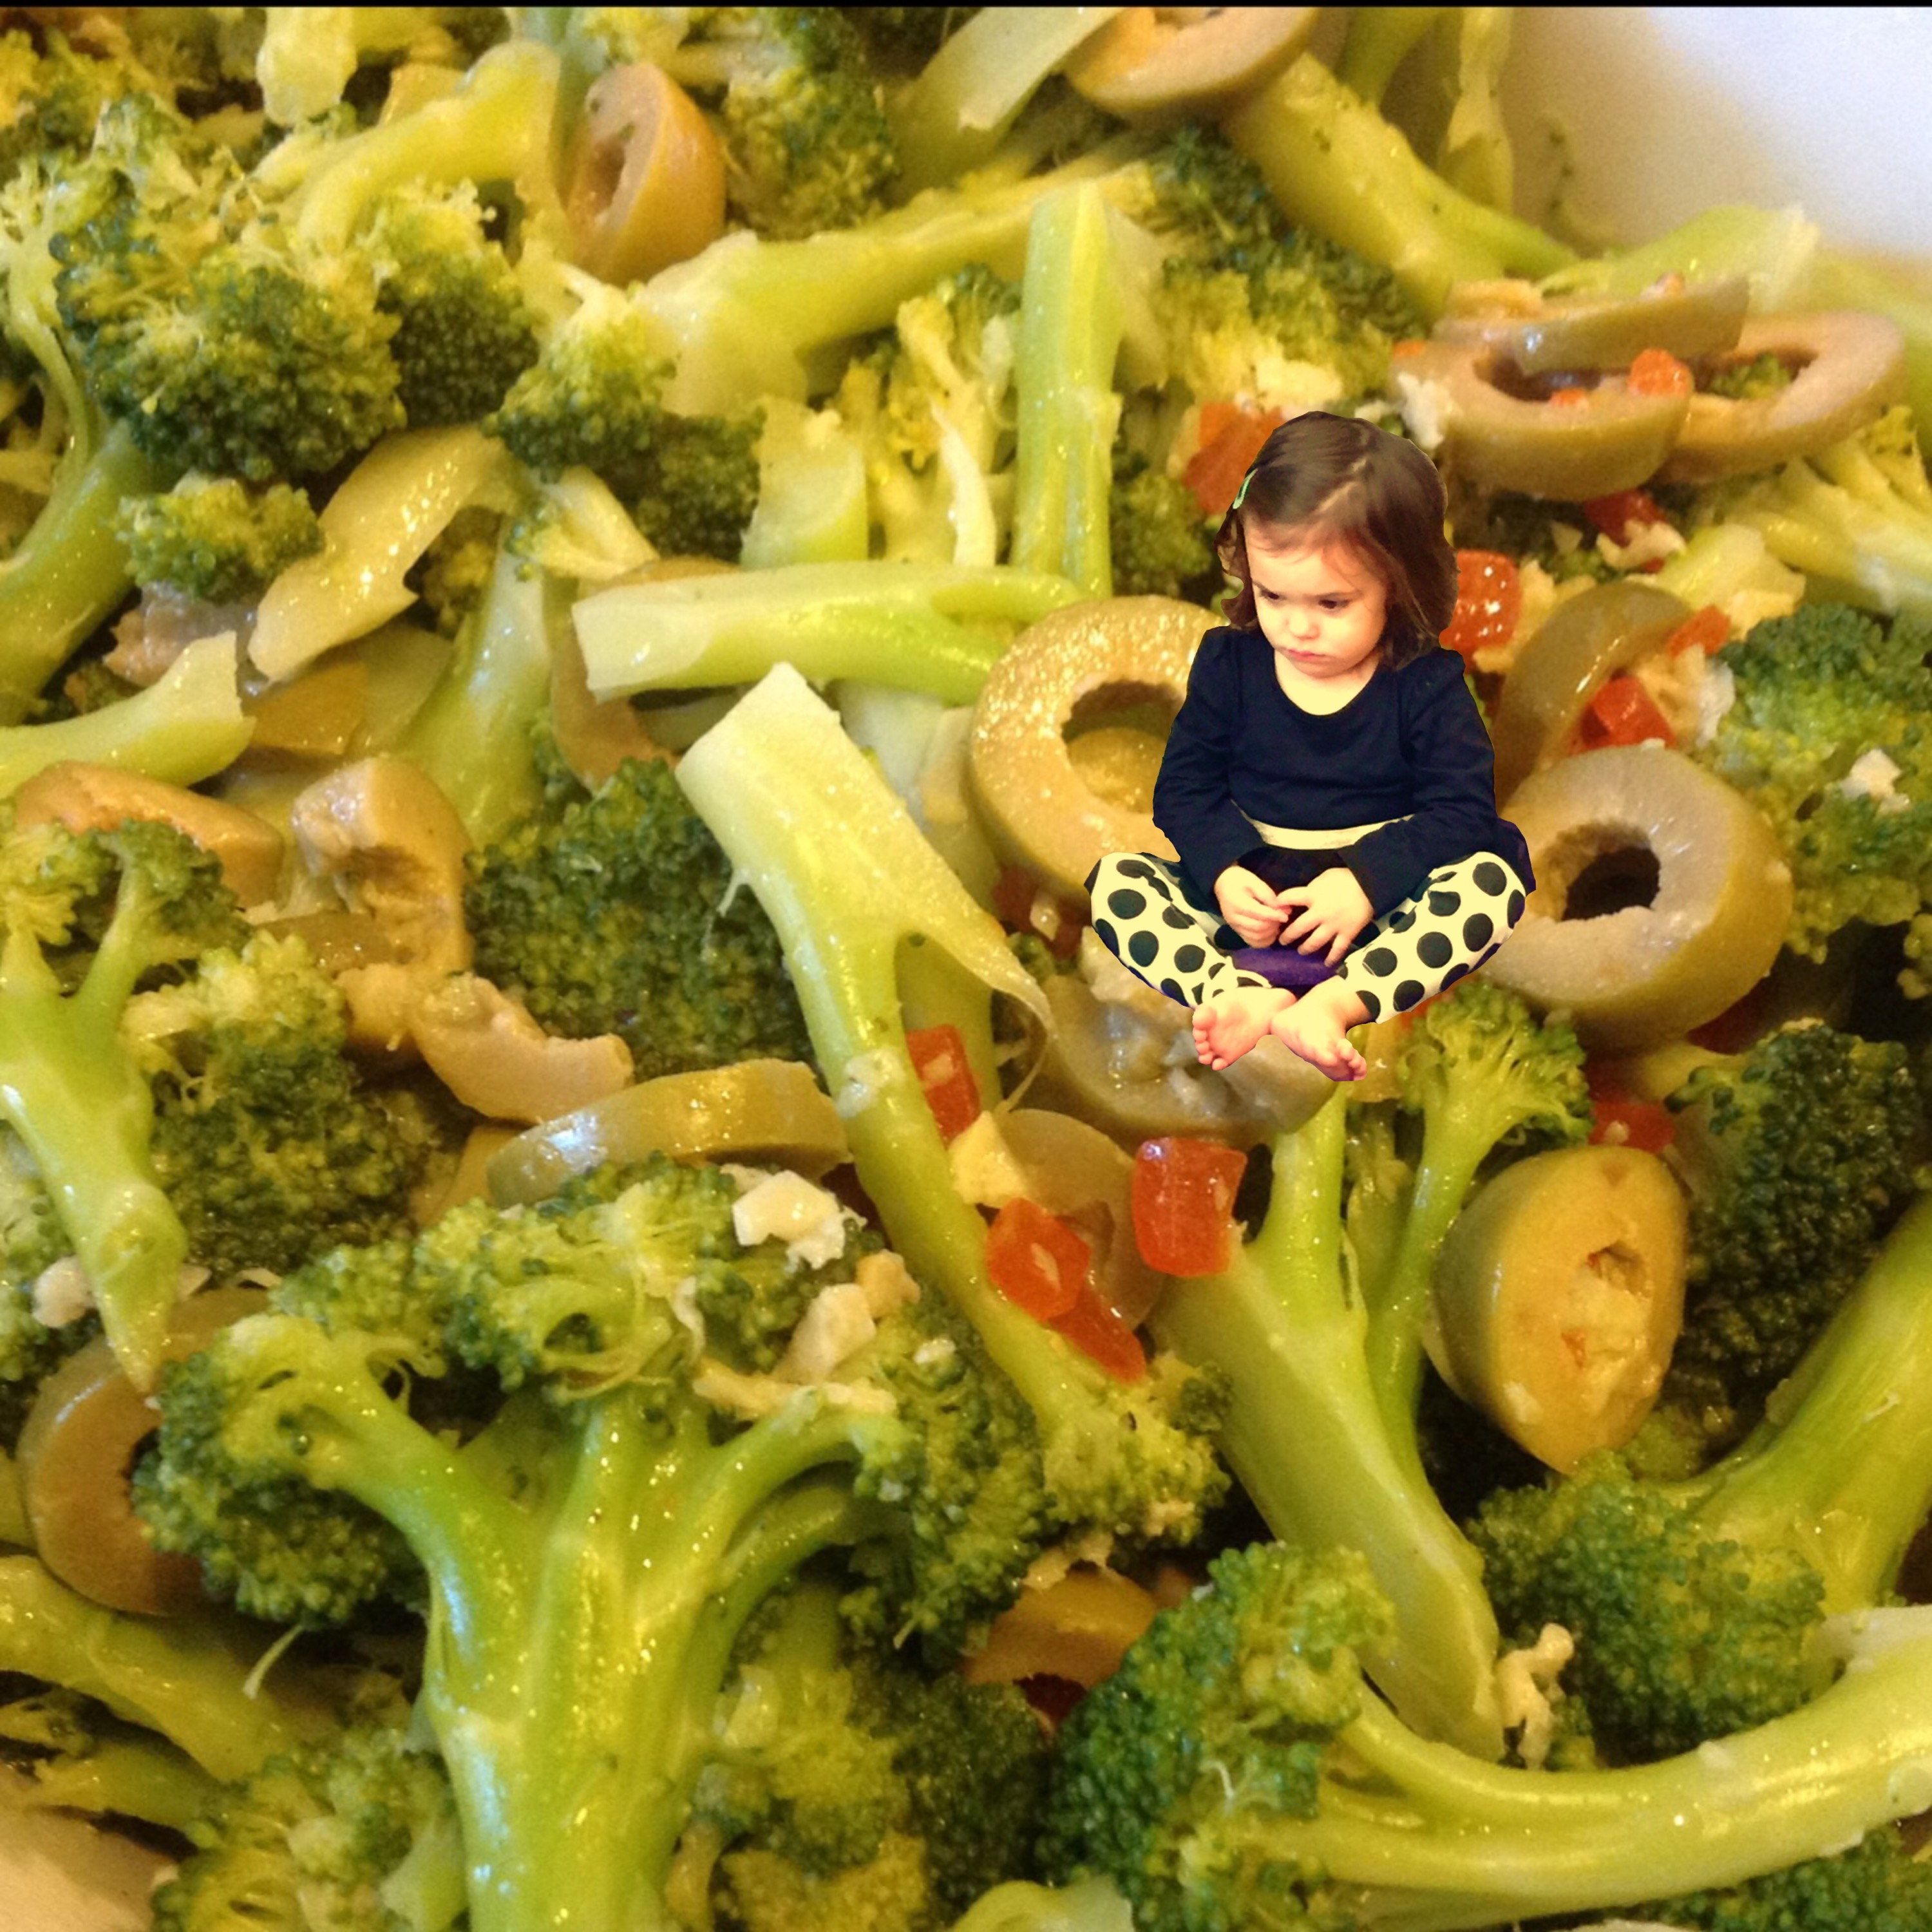 Yes, I Superimposed My Niece Onto A Bowl of Broccoli